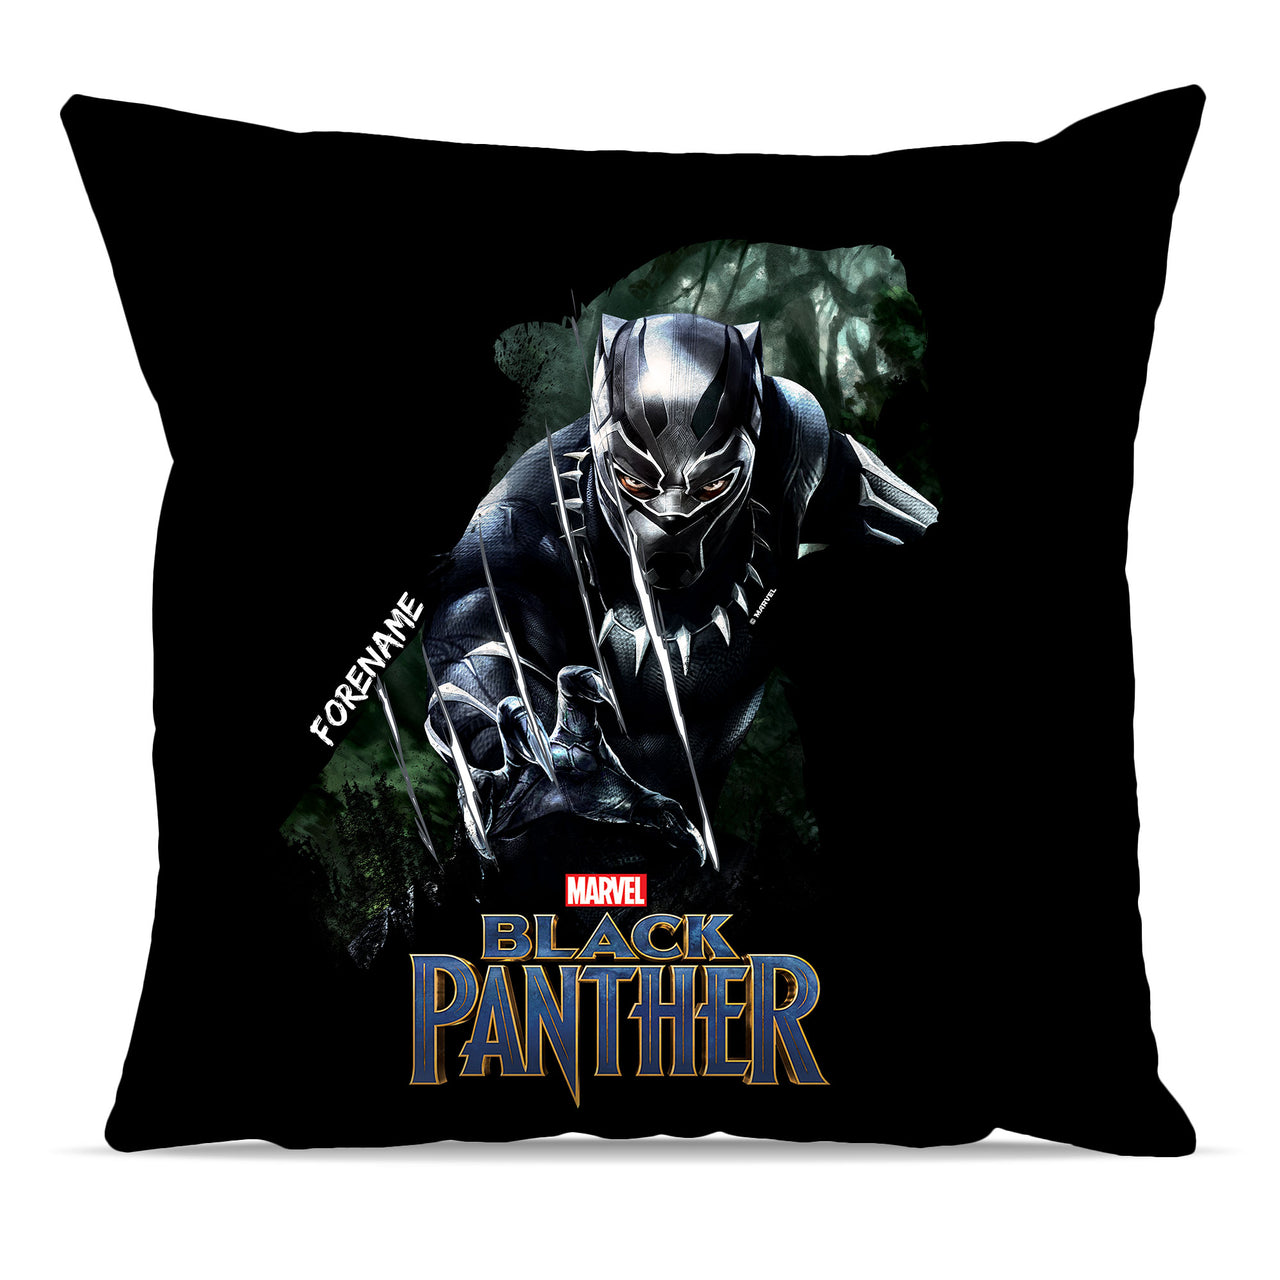 Marvel Black Panther Double Exposure Cushions, Gifts